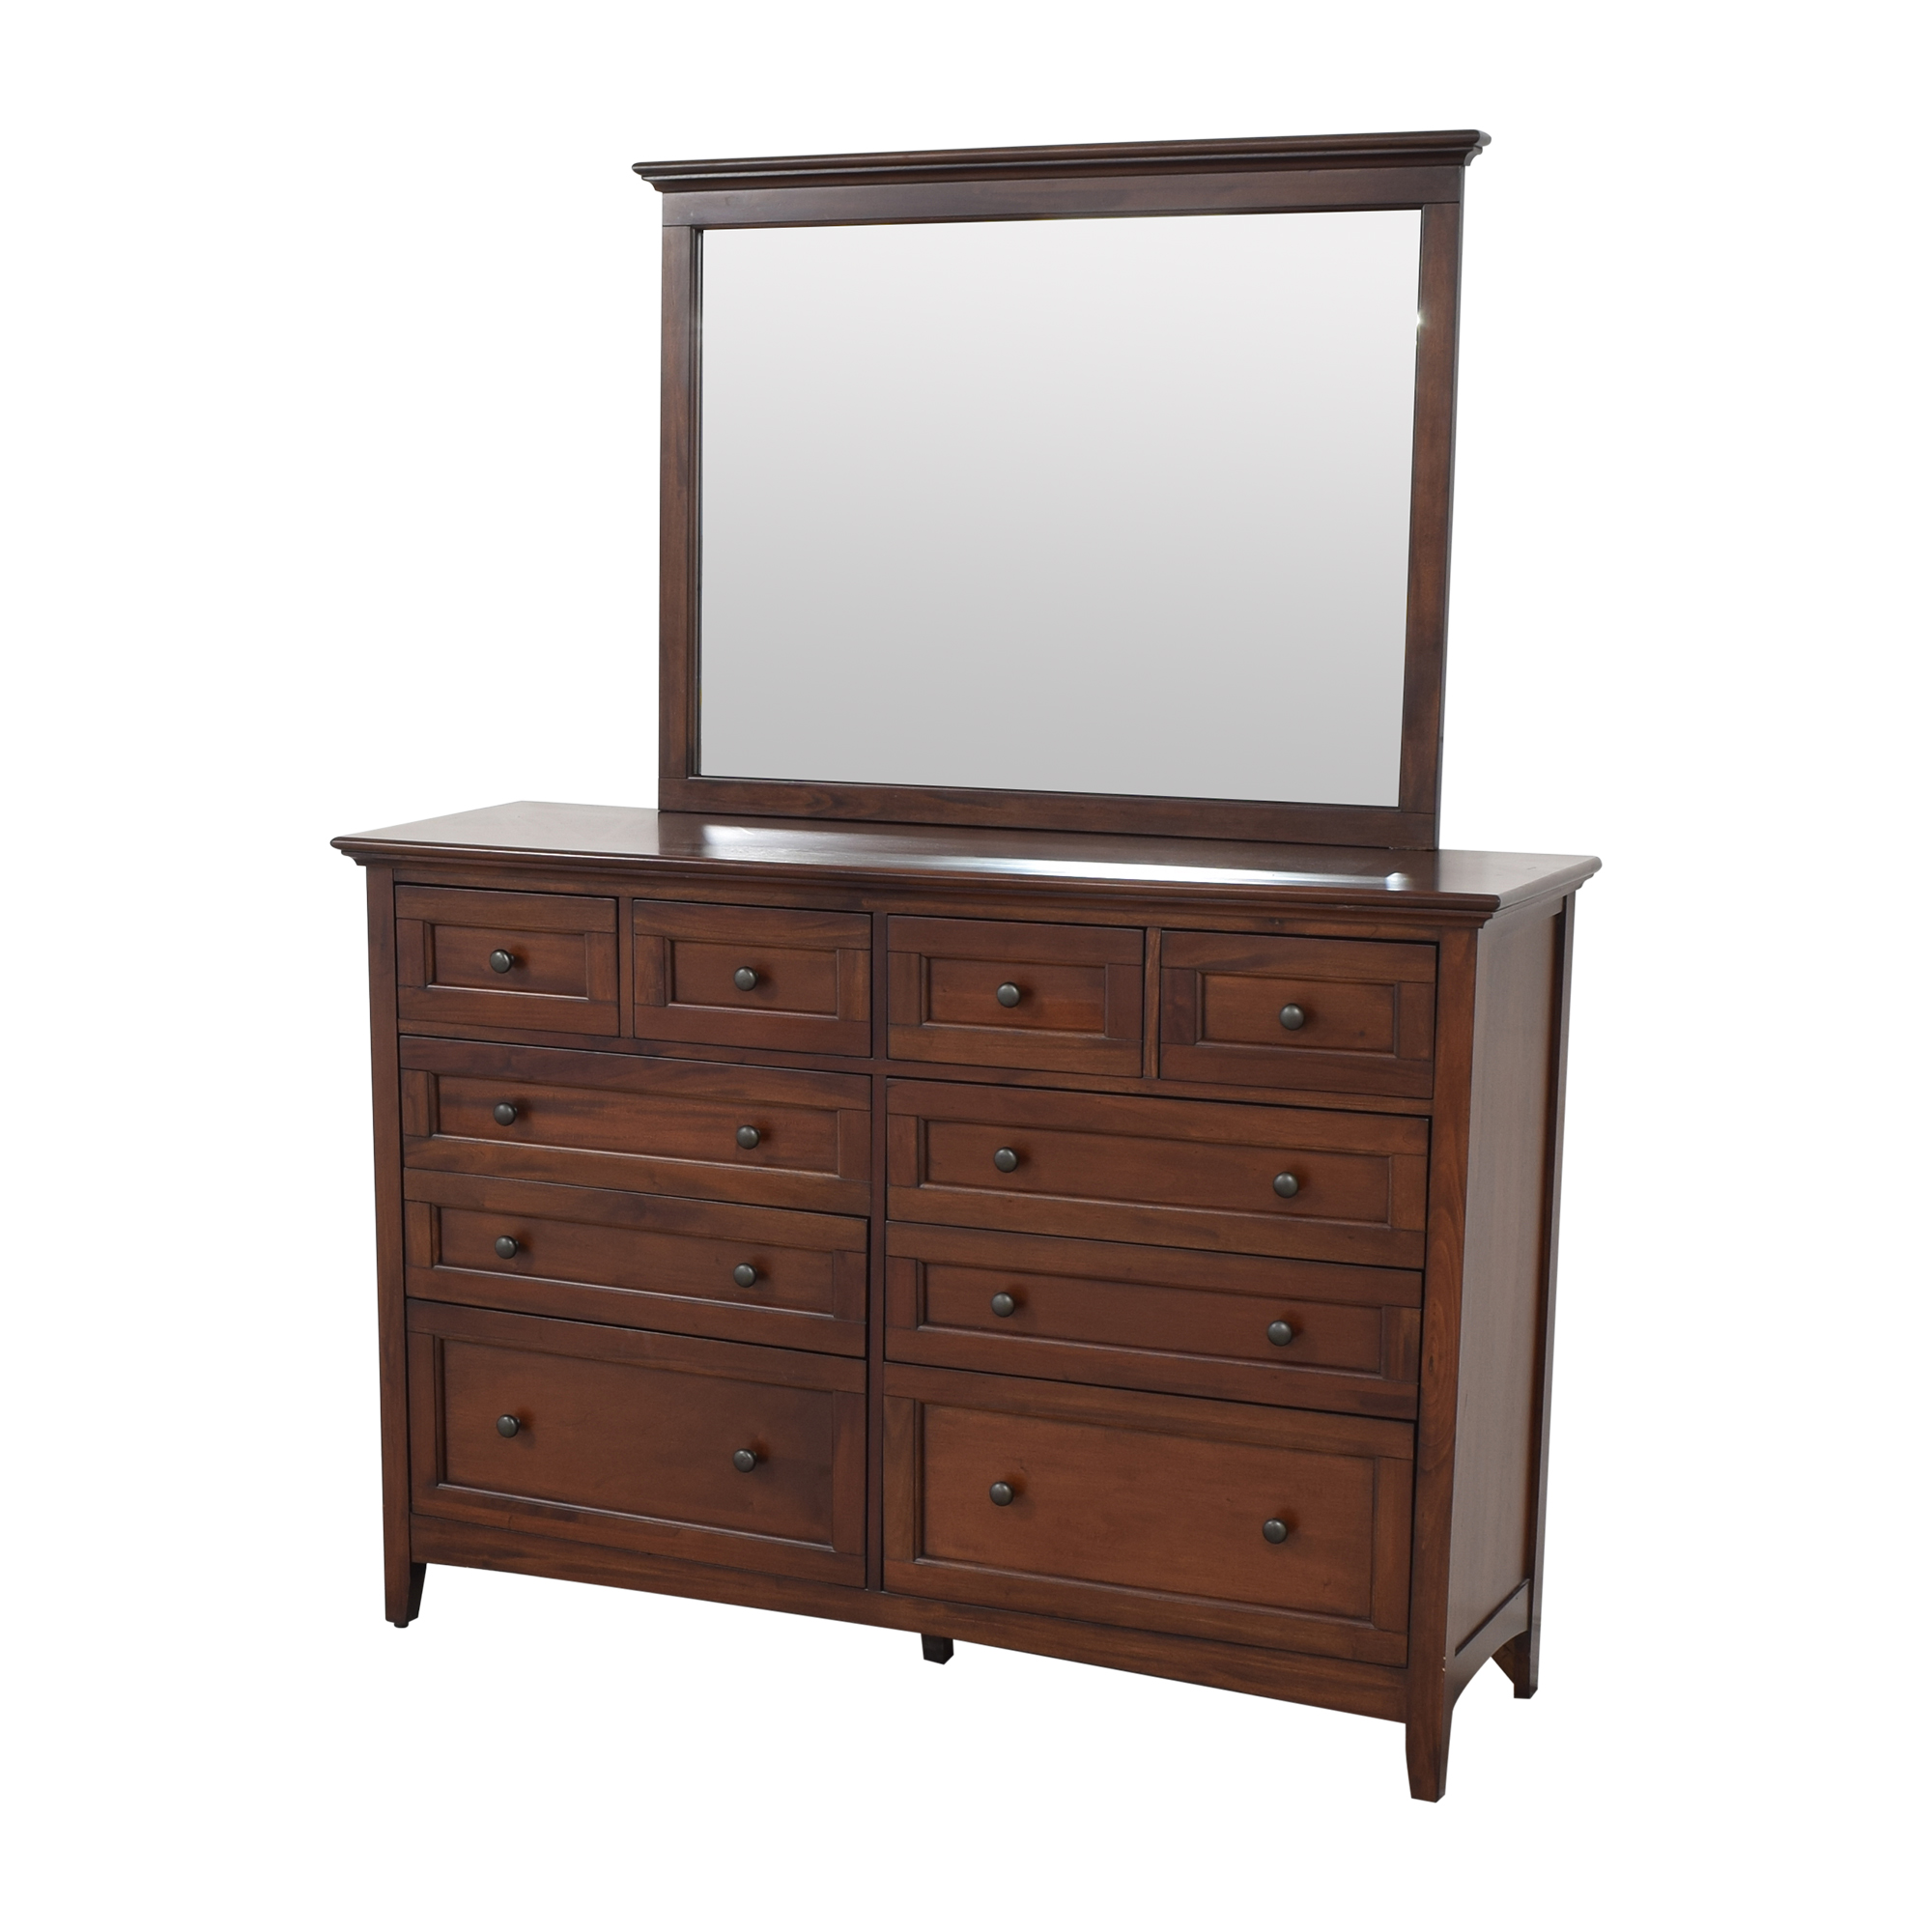 buy A-America Westlake Bedroom Dresser with Mirror A-America Wood Furniture